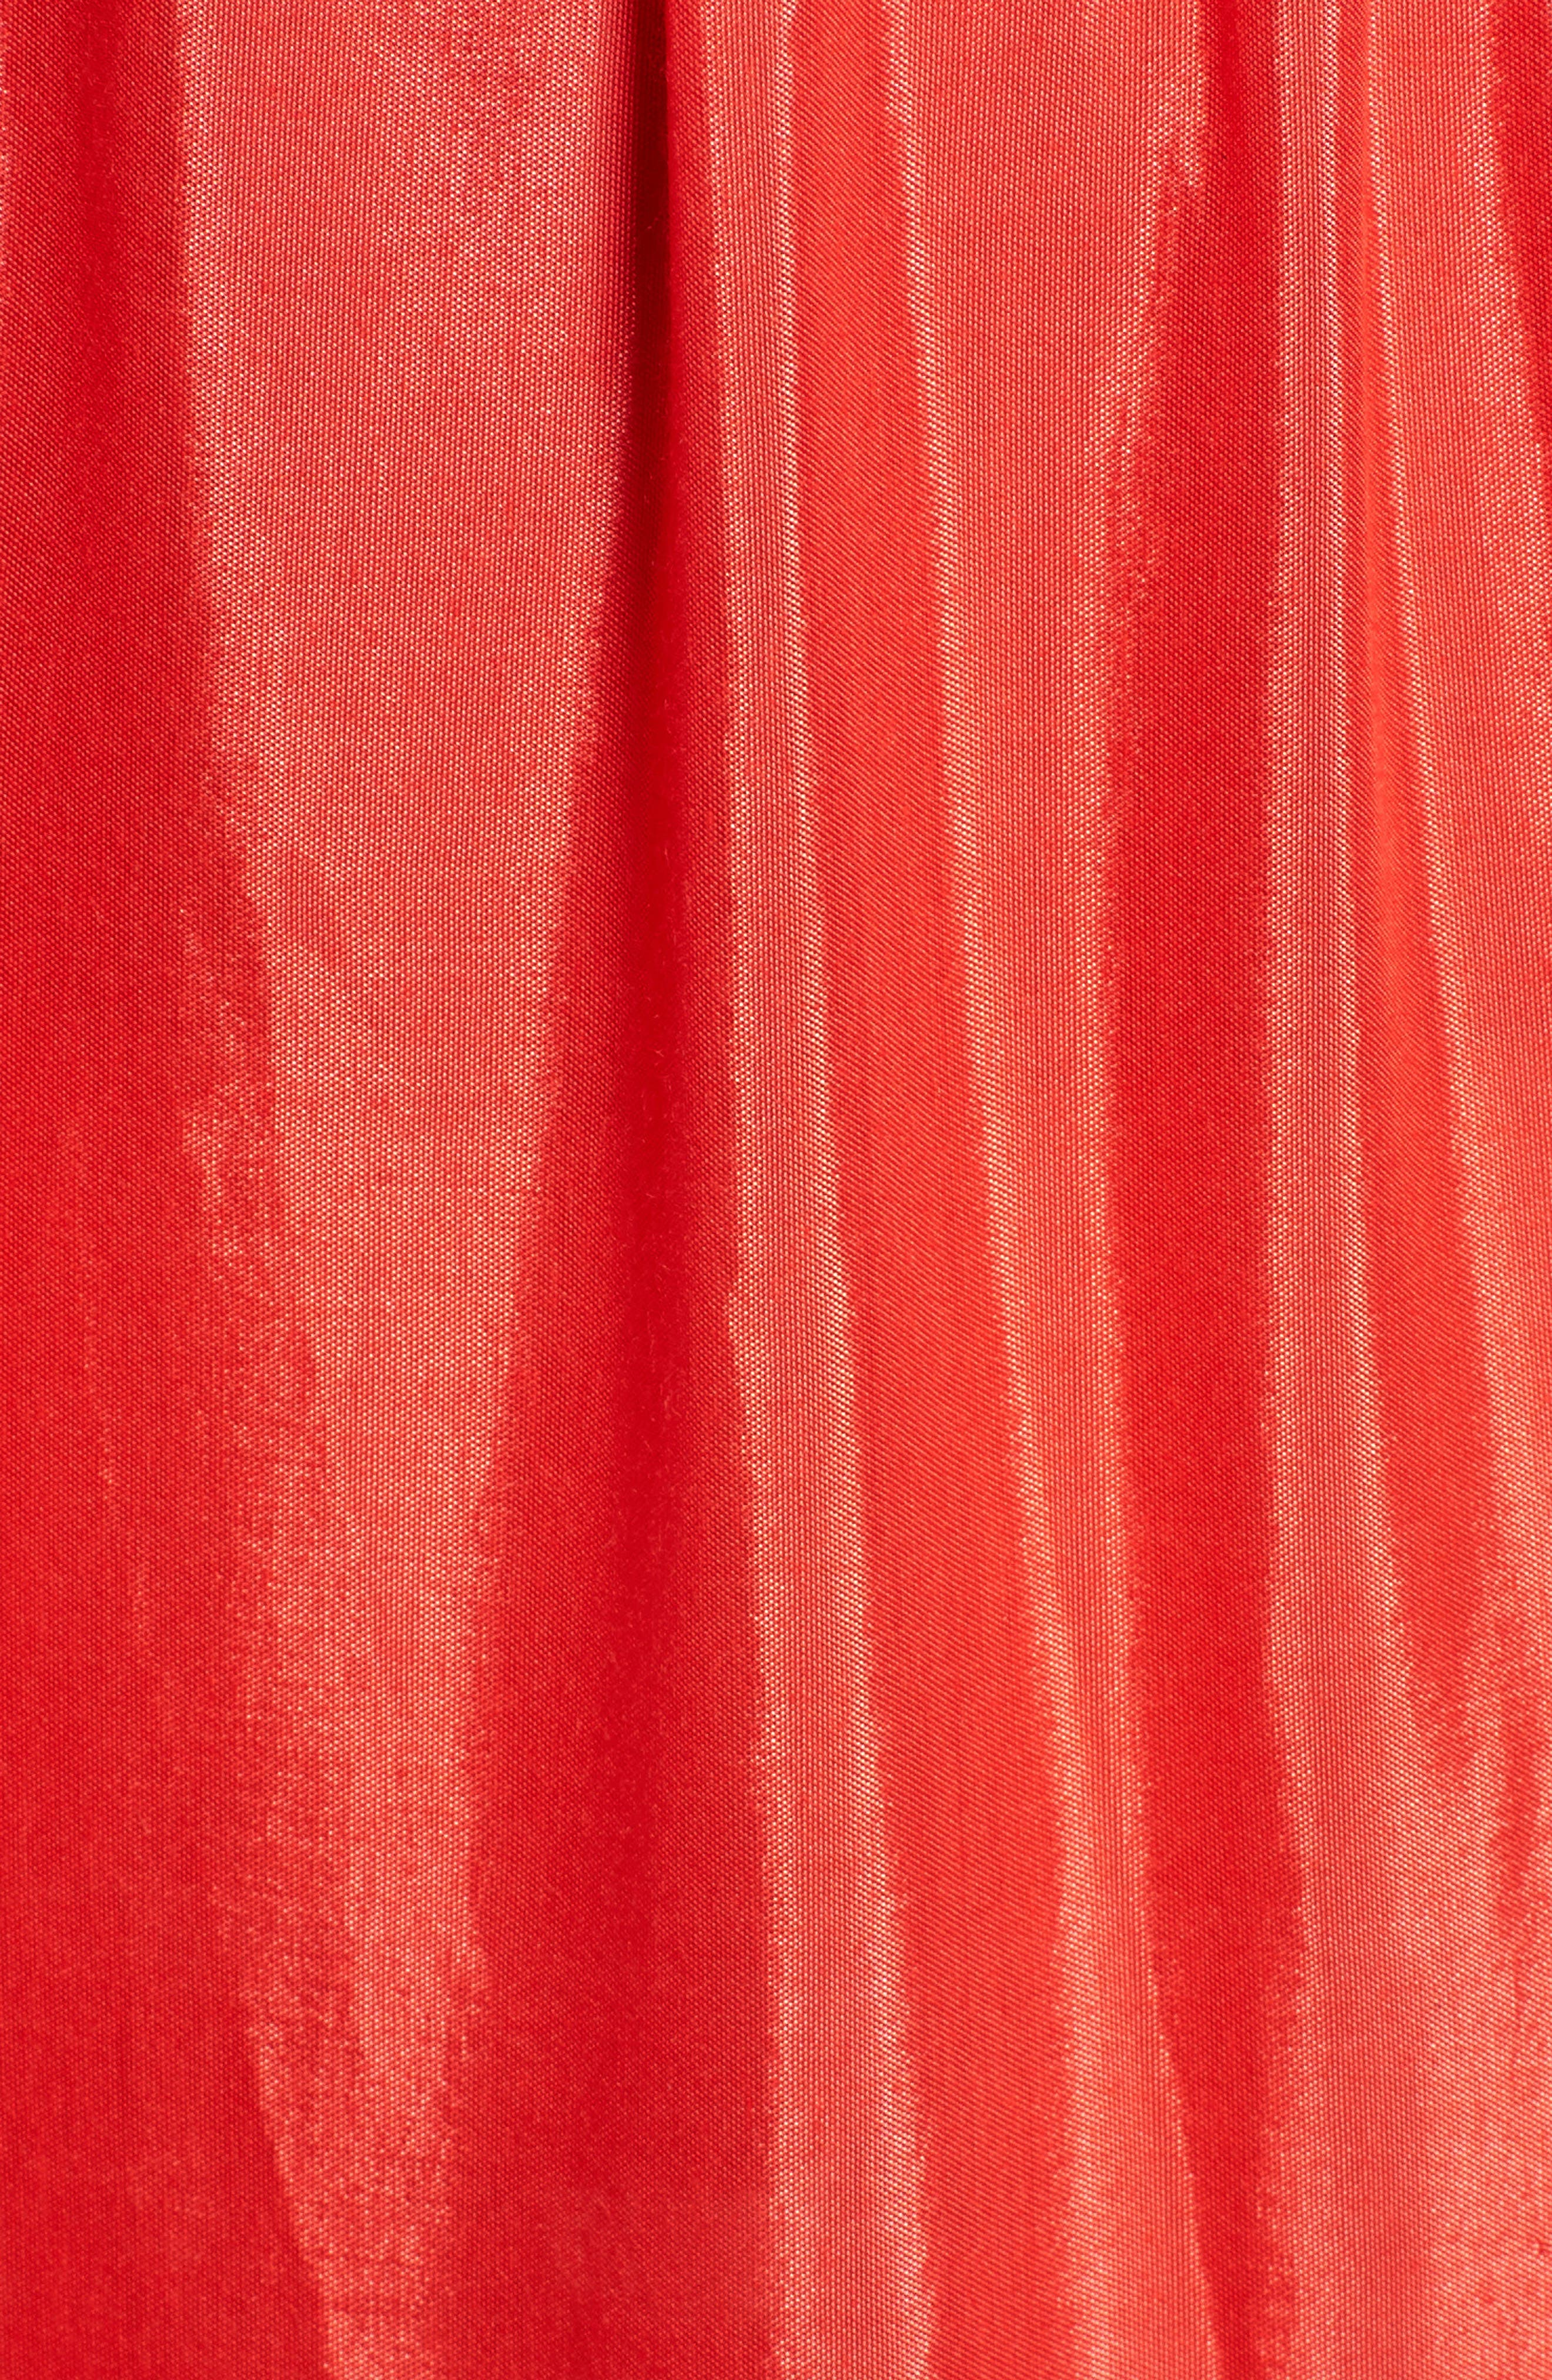 One-Shoulder Maxi Dress,                             Alternate thumbnail 6, color,                             Bright Red